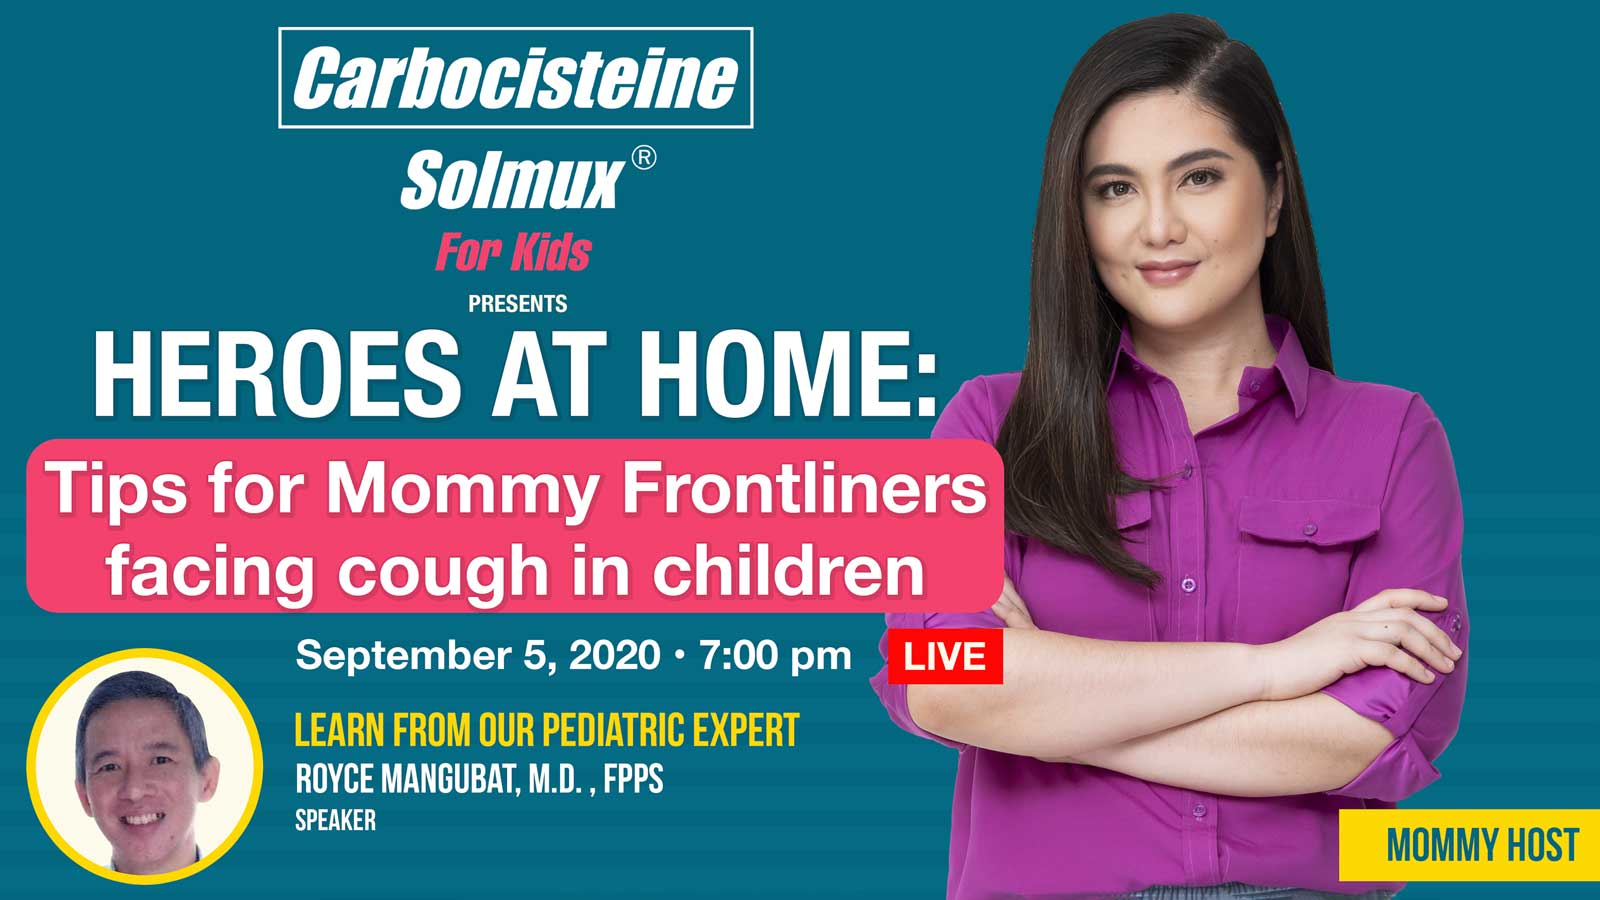 HEROES AT HOME: Tips for Mommy Frontliners Facing Cough in Children